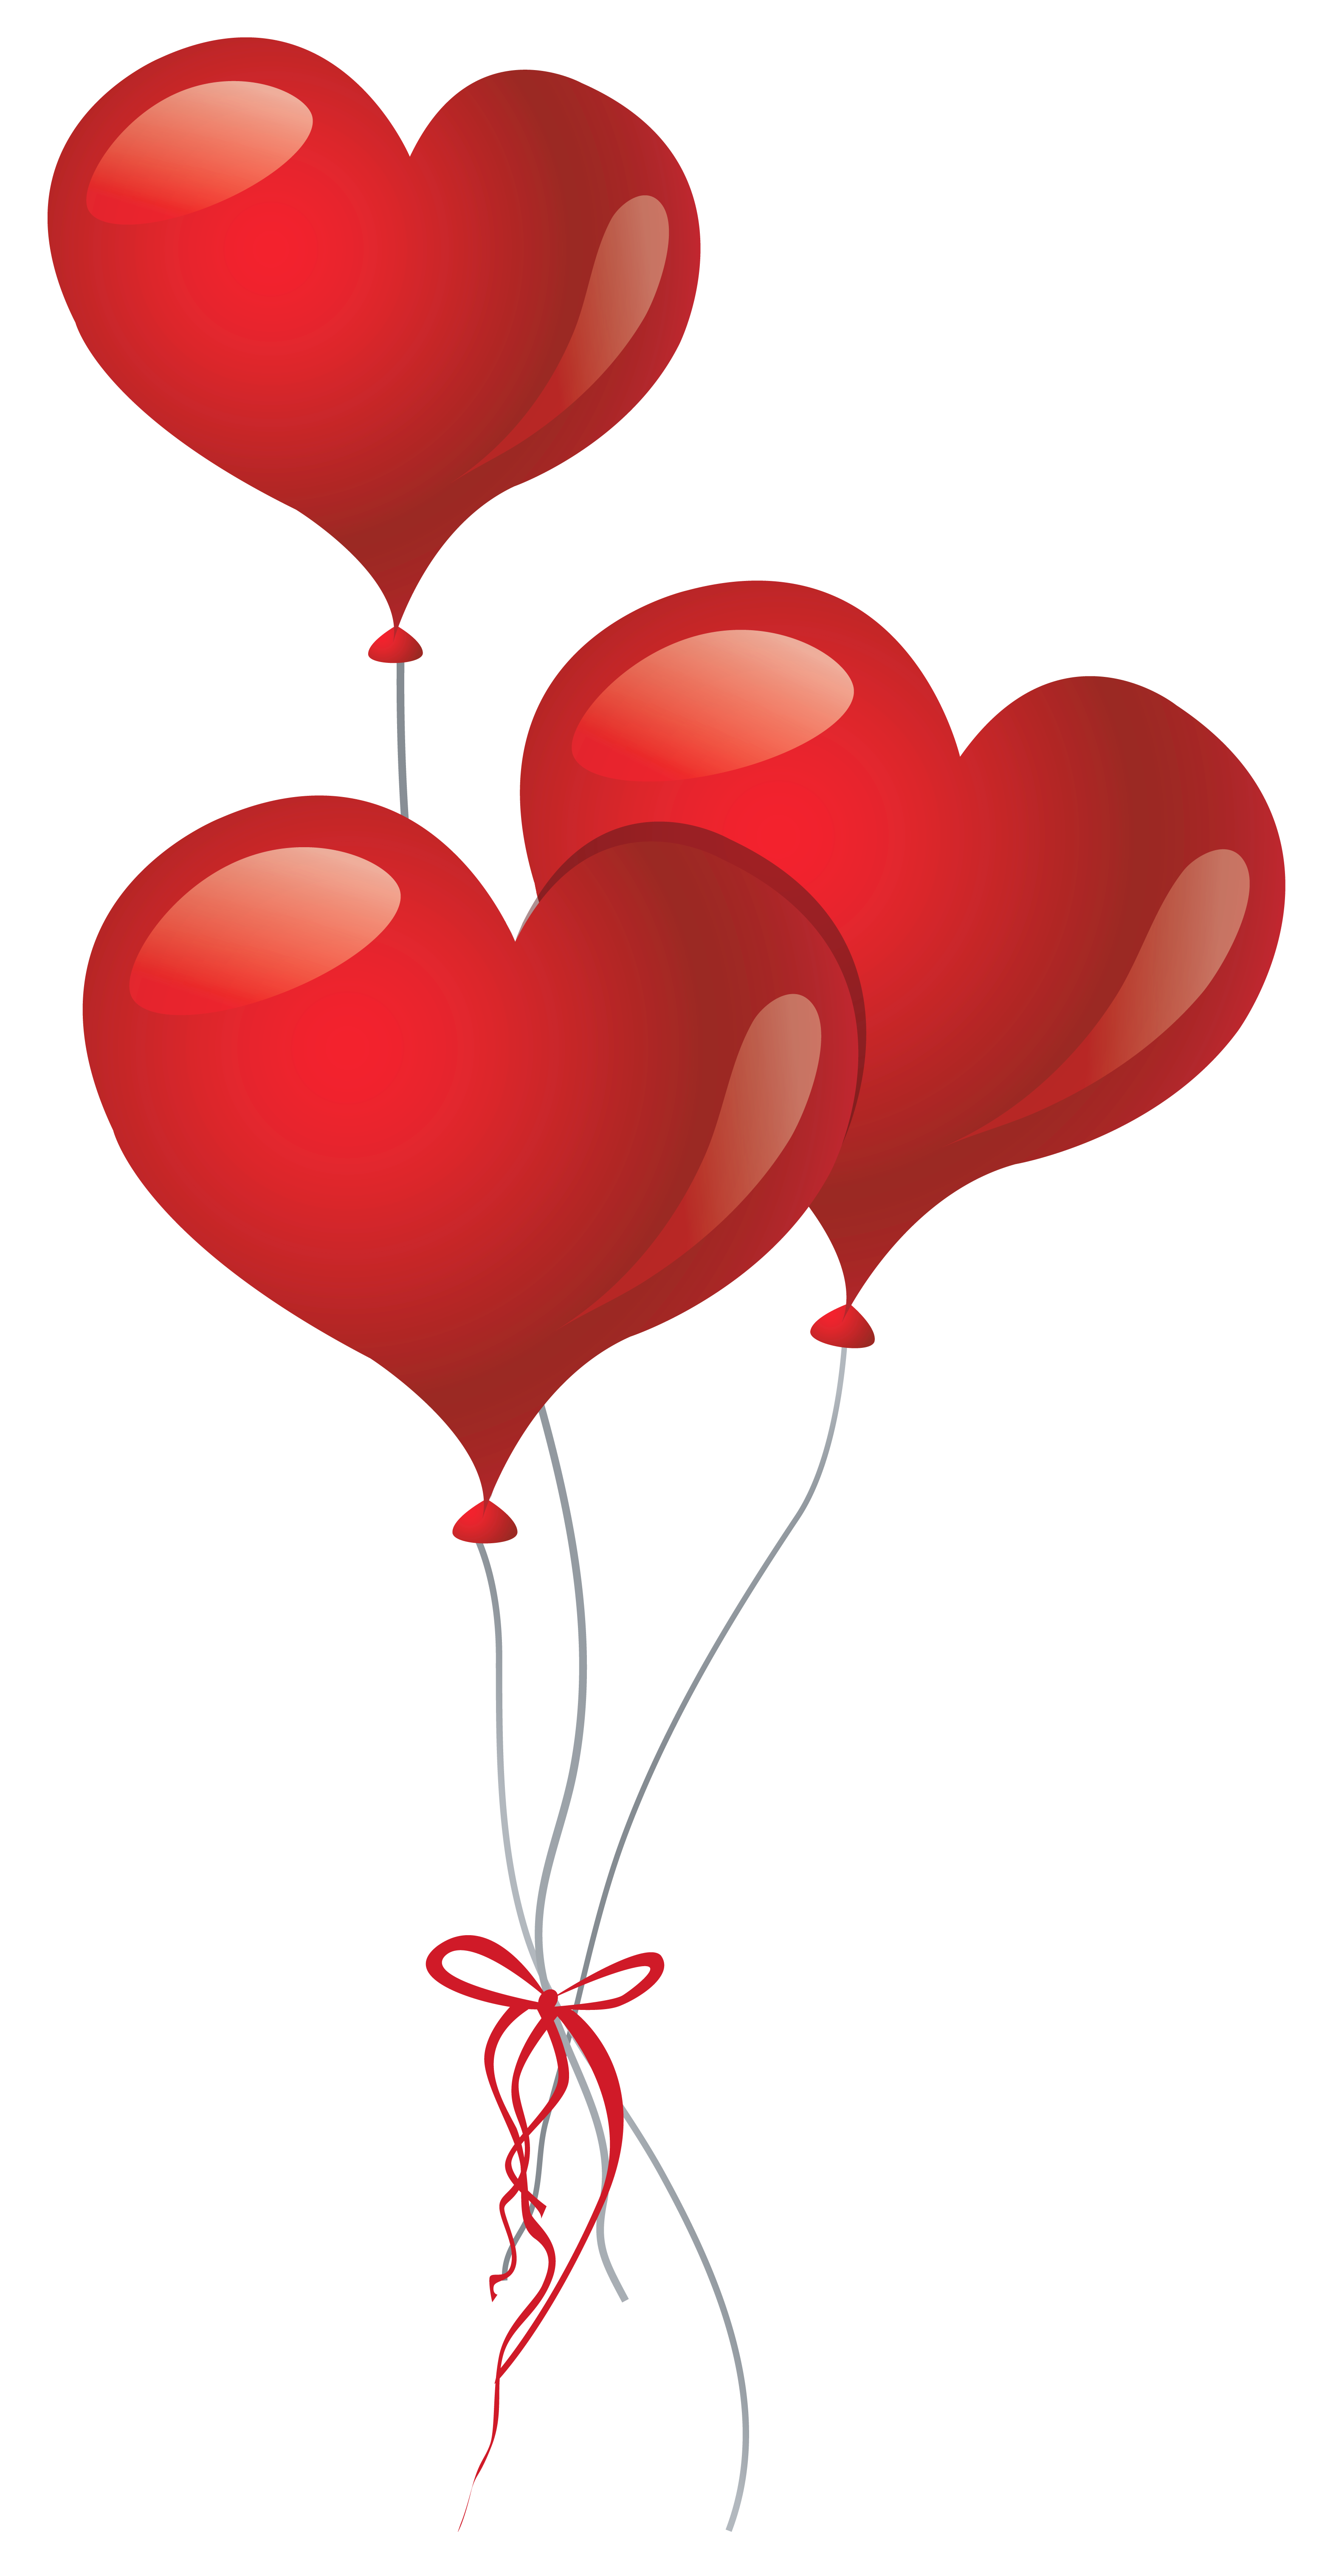 Heart Clipart Png - Cliparts.co